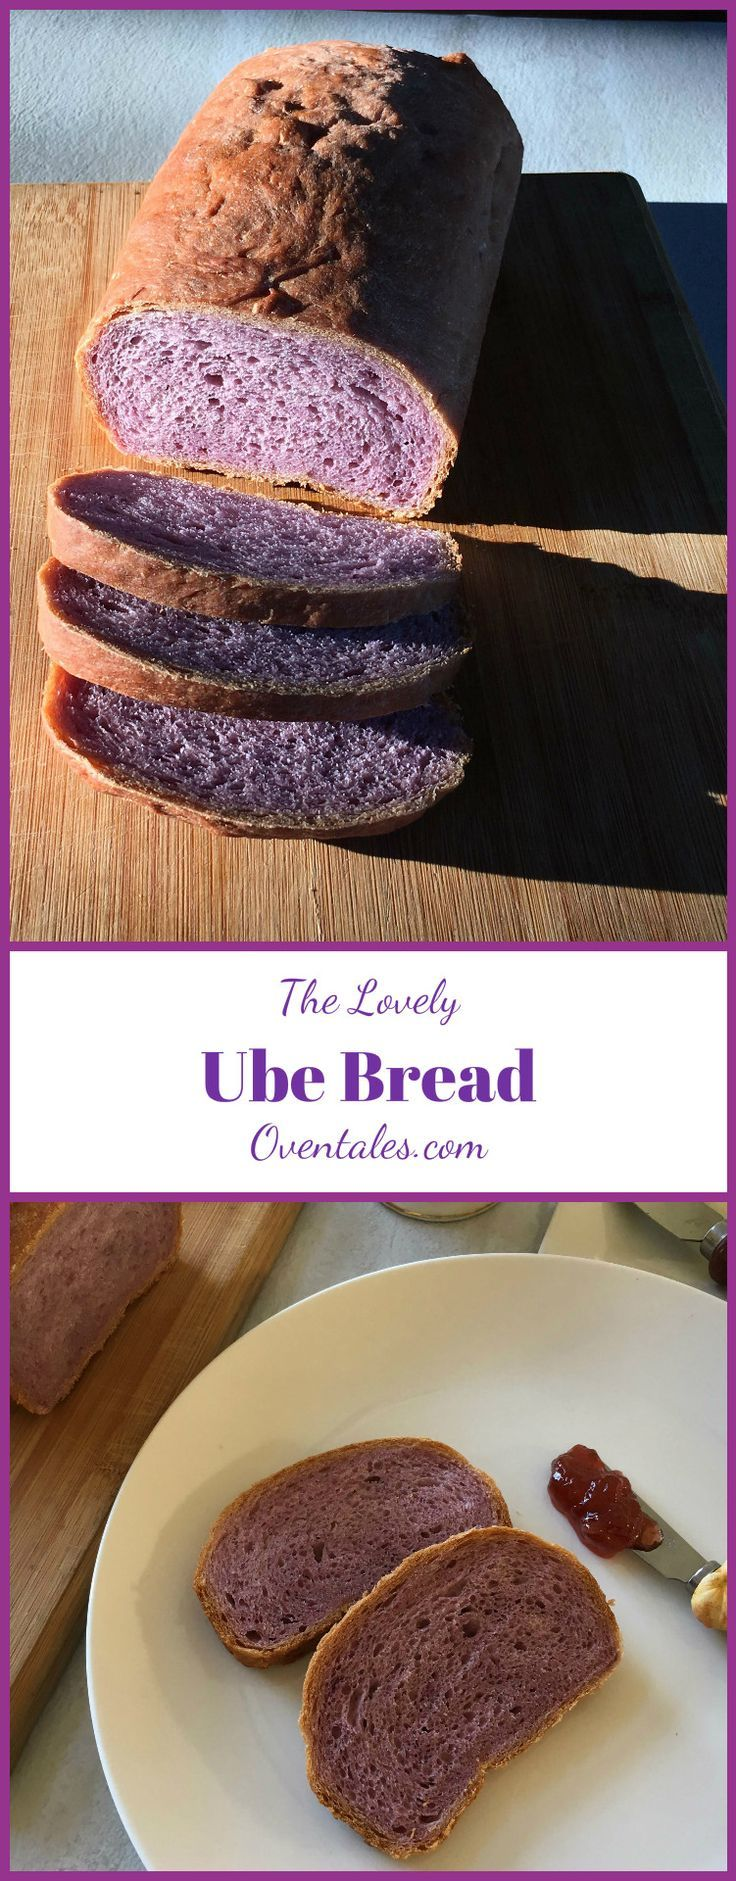 Beautiful Purple Loaf - Ube Bread | Oven Tales Ube is  the  yam or  sweet potato  with  purple  color. Bread made with  Ube  is  soft  and  lovely, perfect  for a breakfast  toast ...